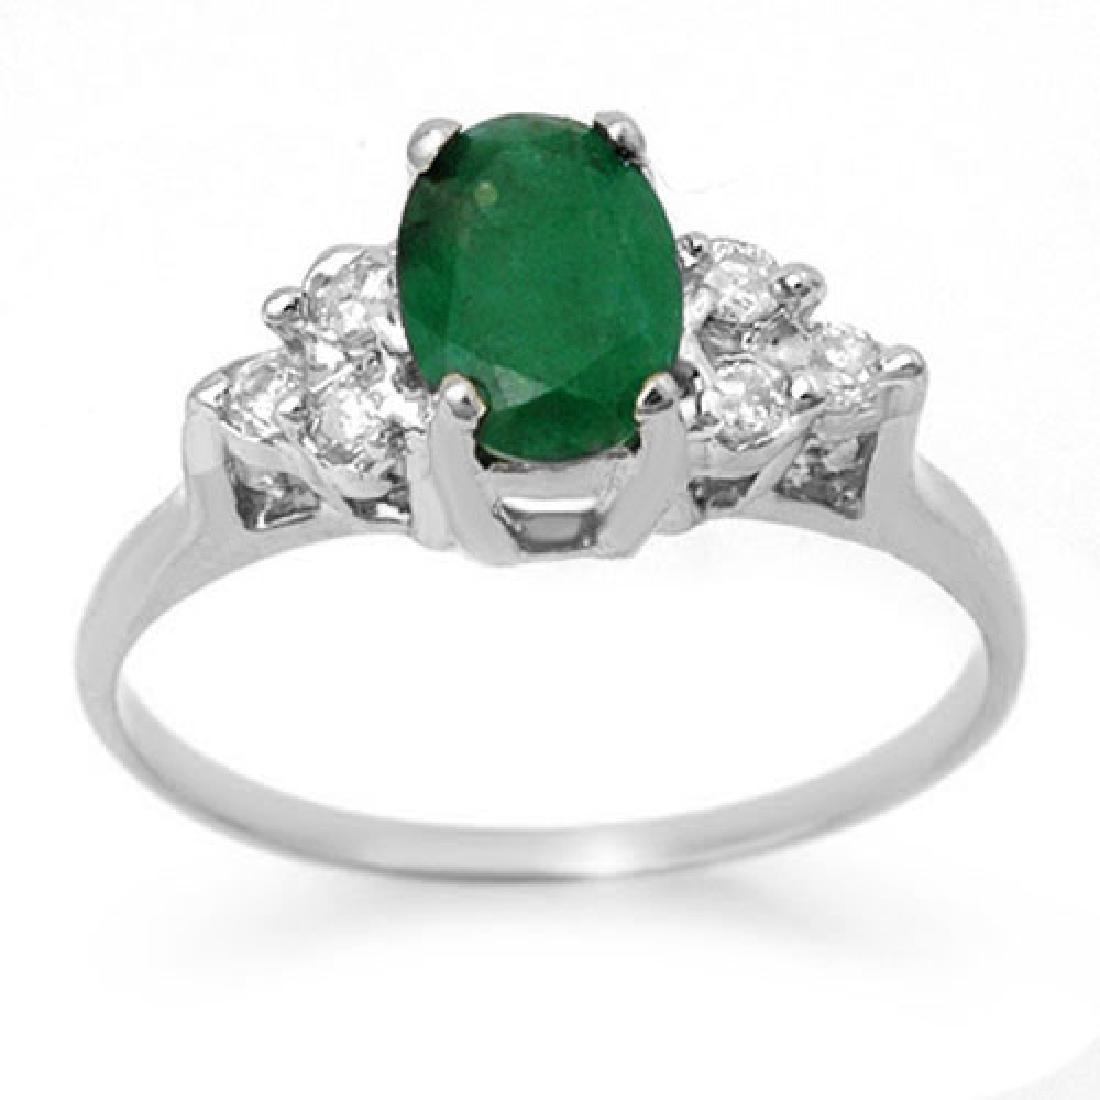 1.18 CTW Emerald & Diamond Ring 18K White Gold